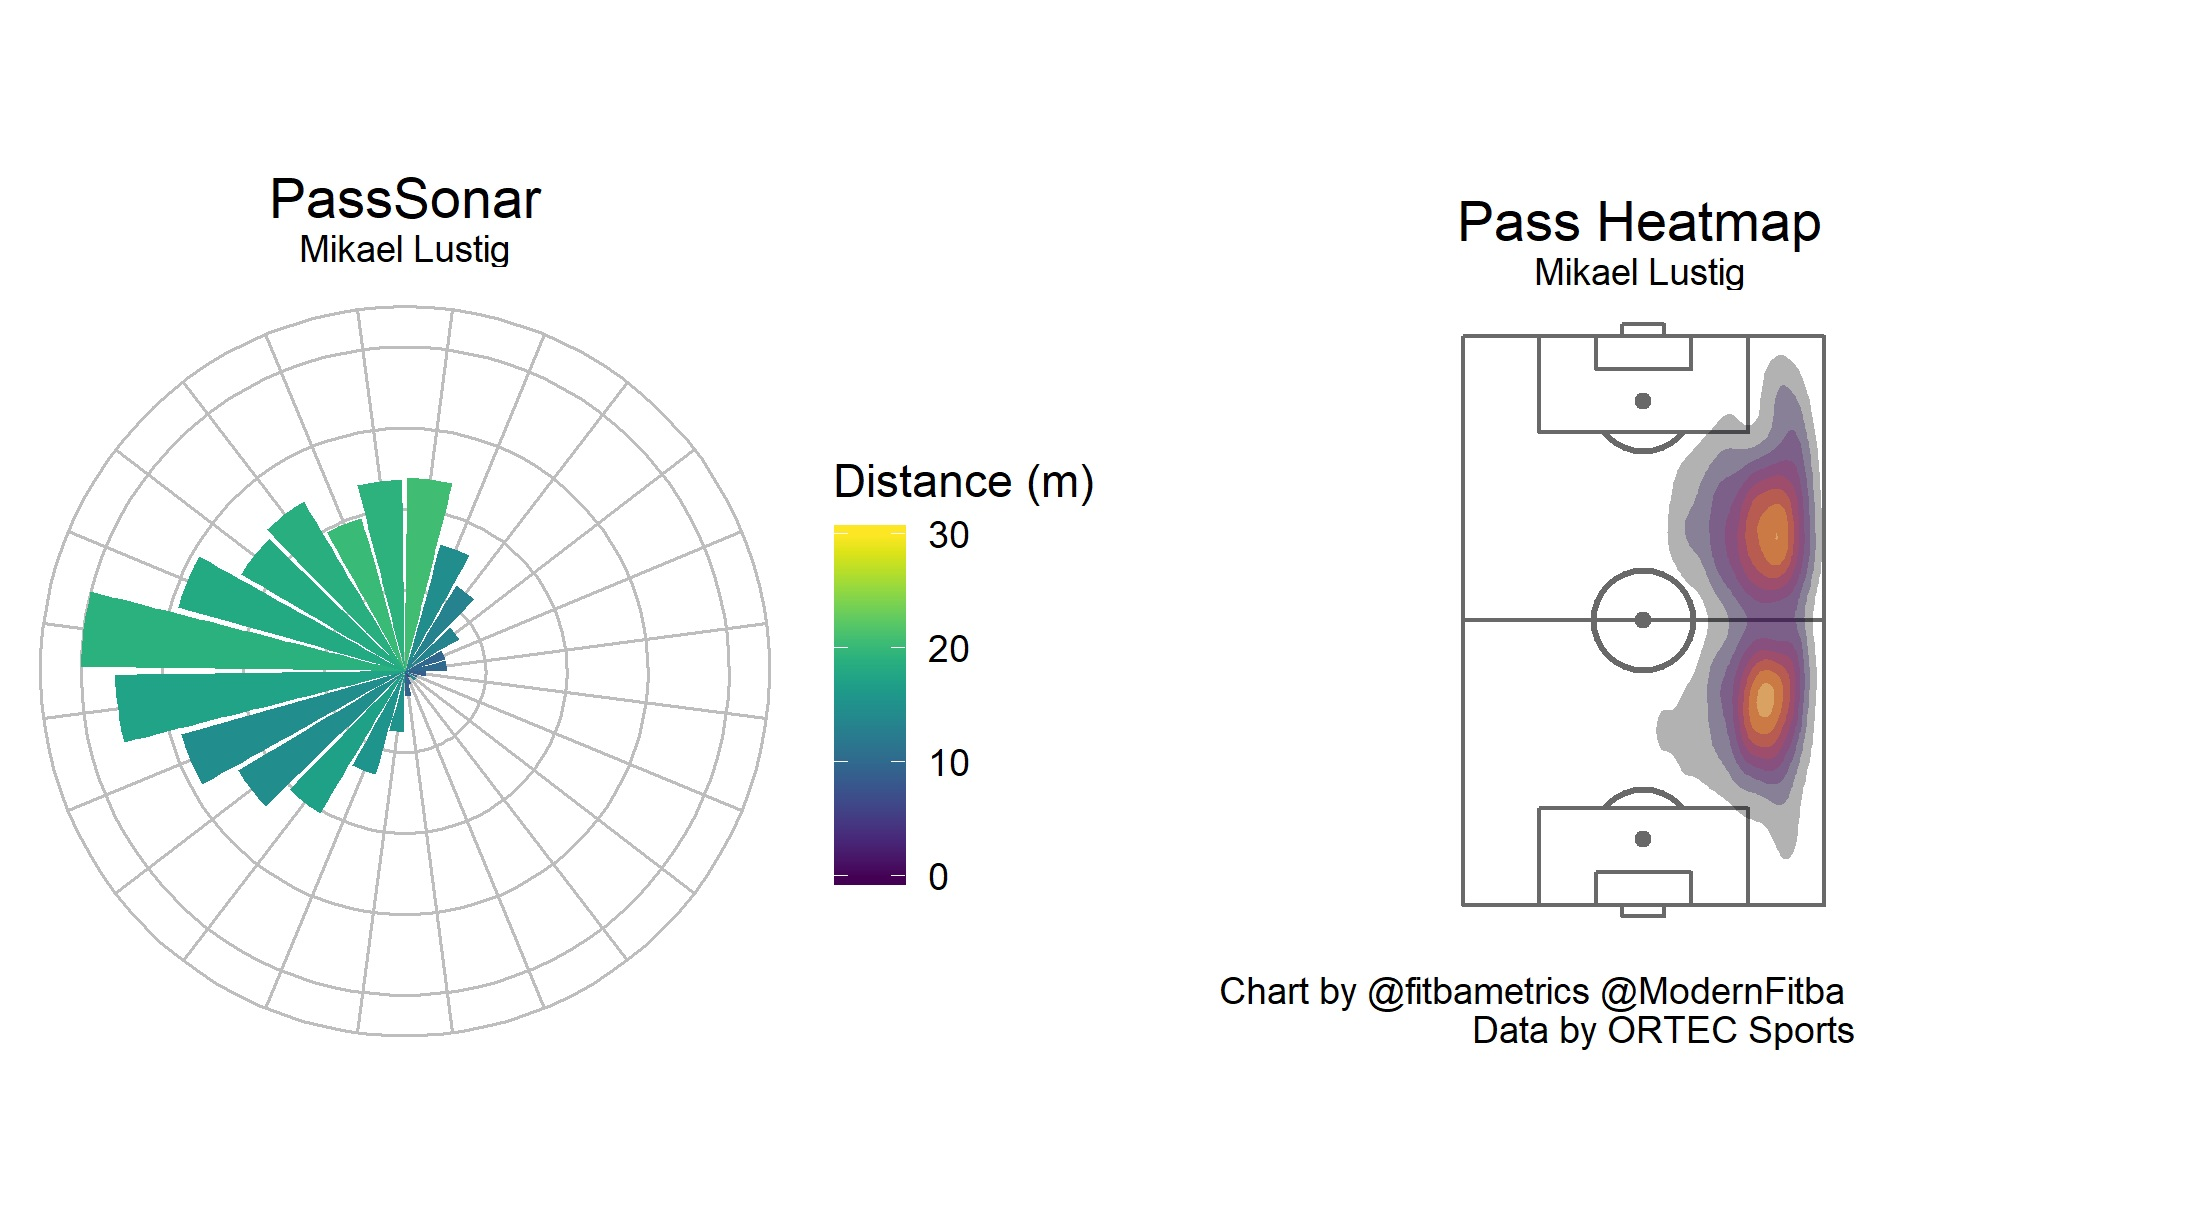 Figure 4. Mikael Lustig (Celtic) PassSonar and pass location heatmap.